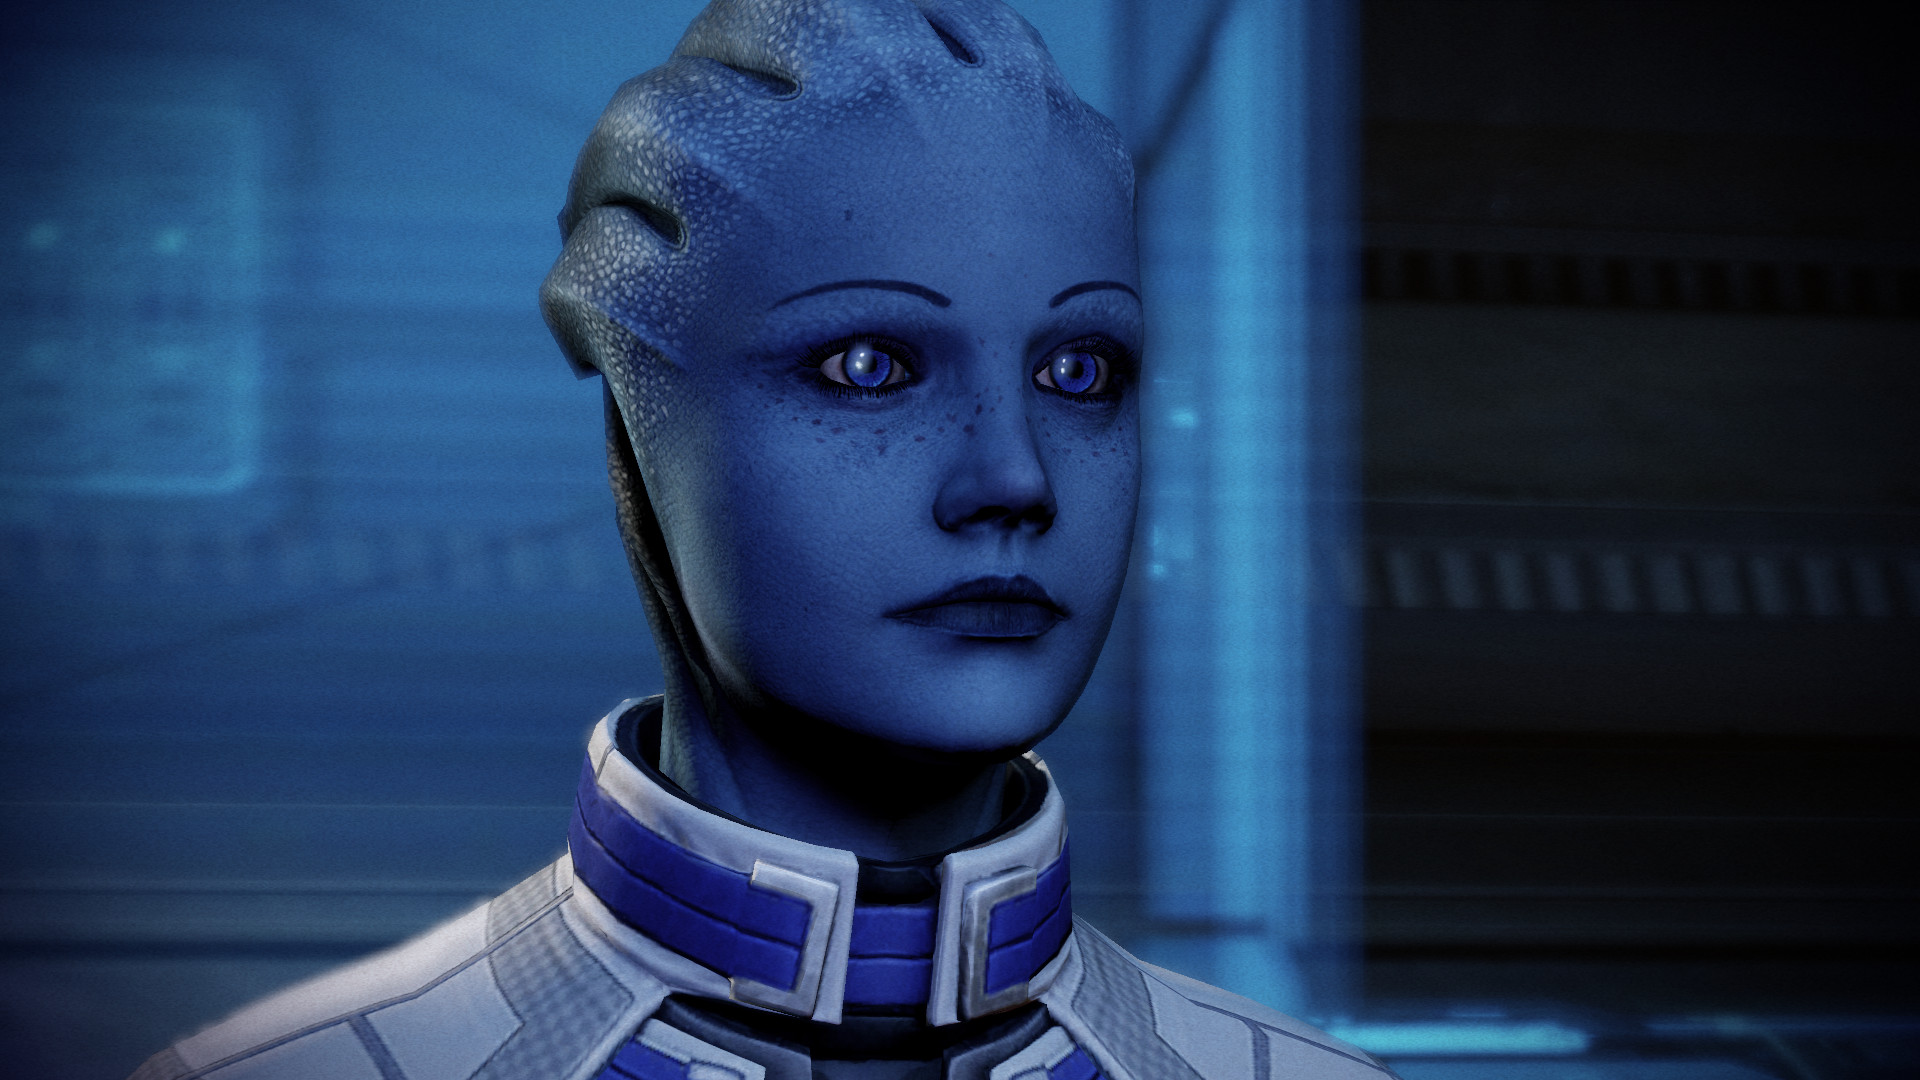 Mass effect impregnation stories exploited video